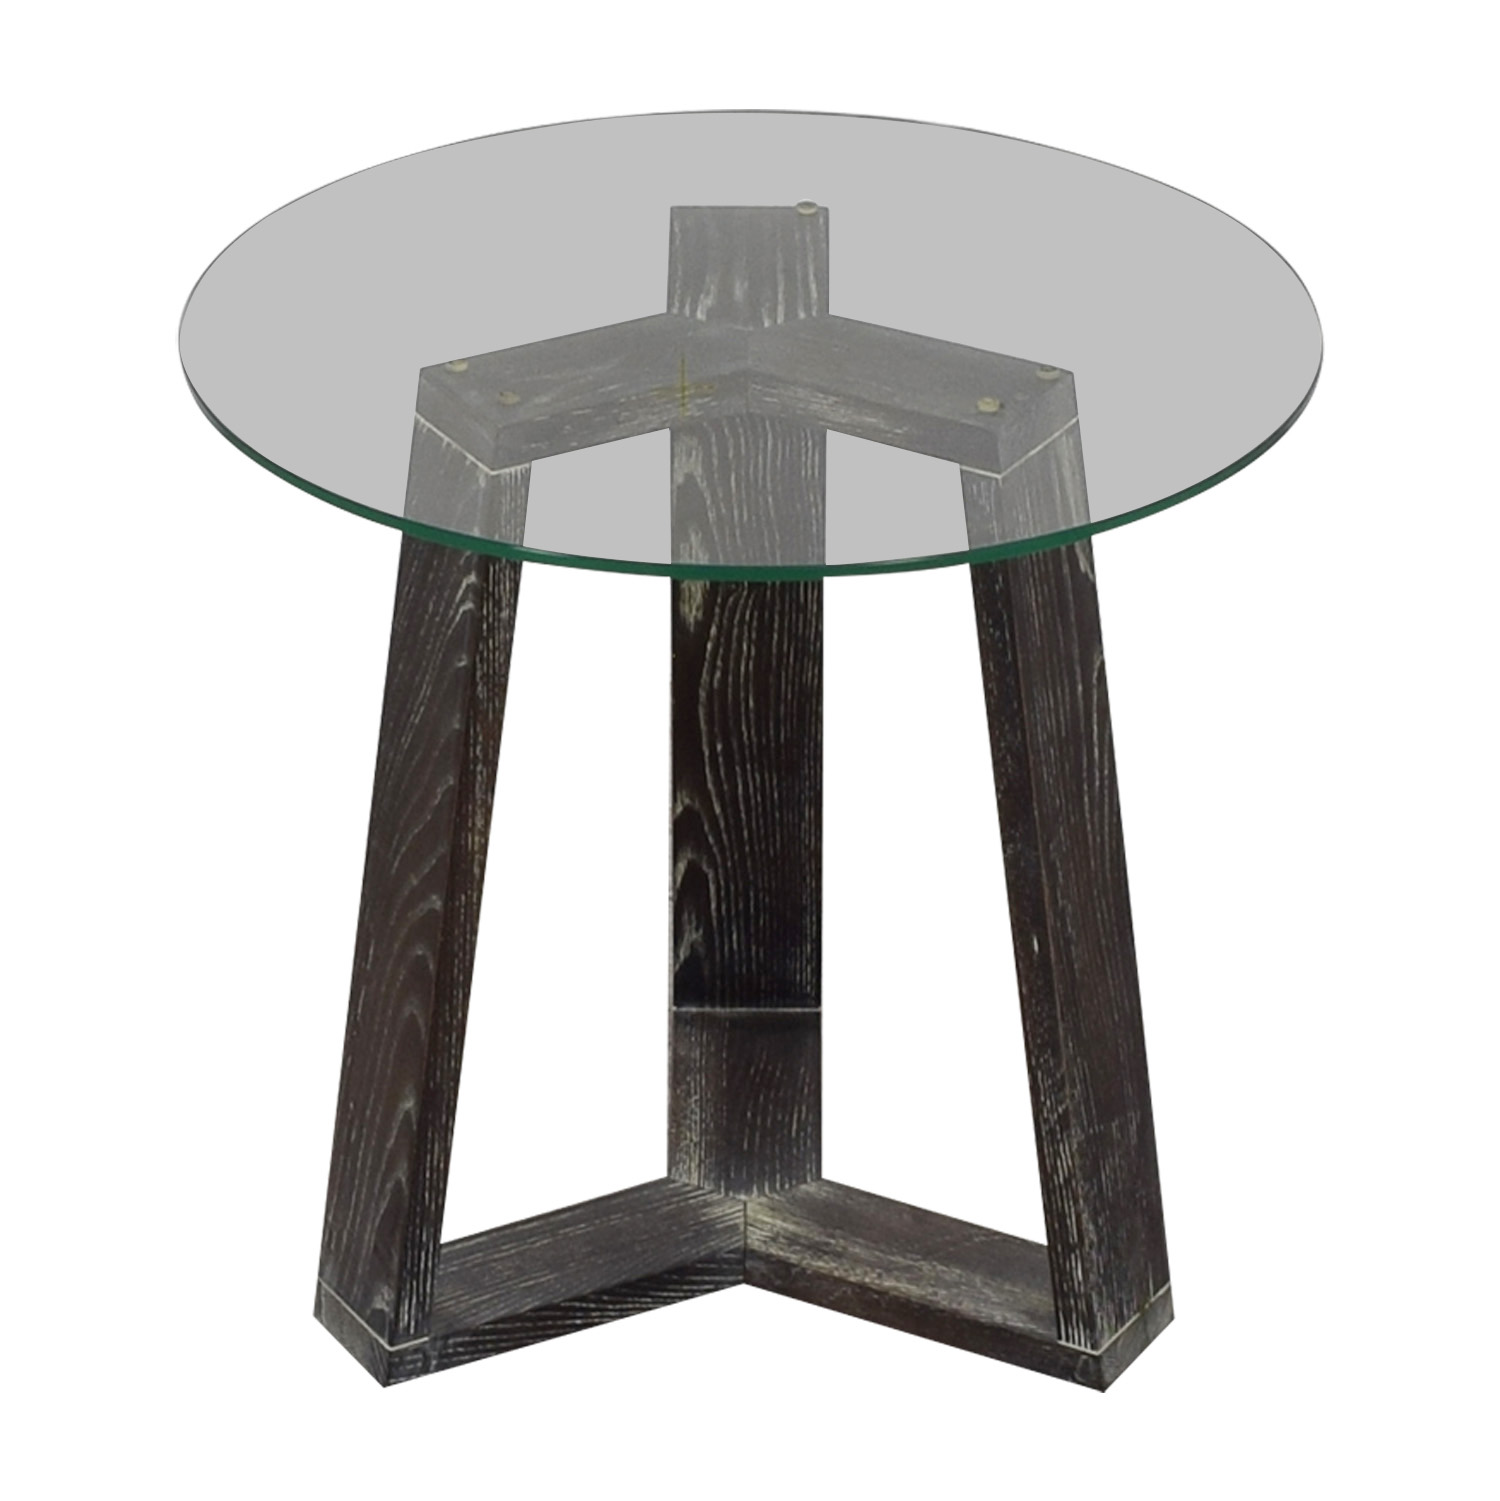 West Elm West Elm Round Glass Side-Table for sale